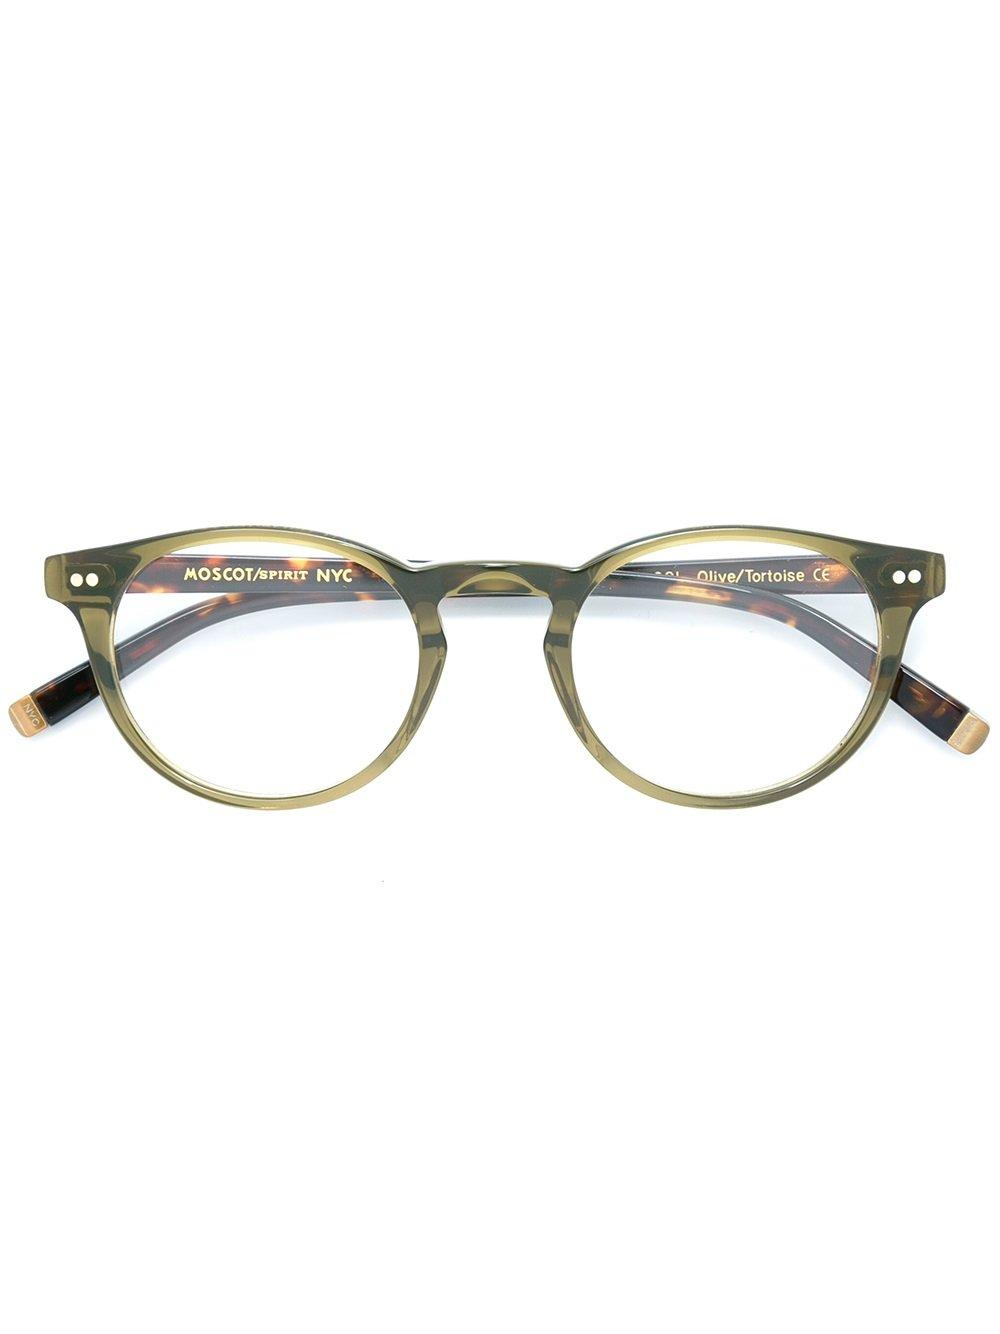 Moscot 'frankie' Optical Glasses In Green